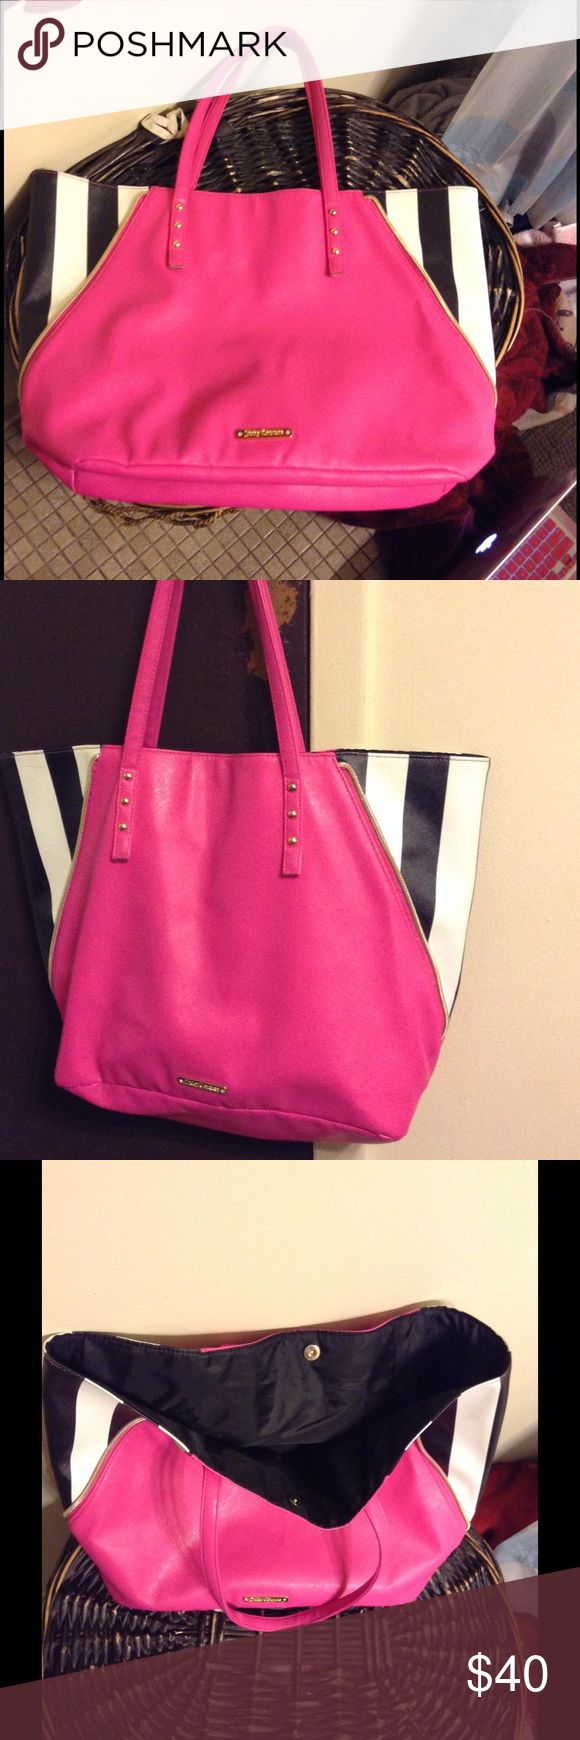 """Authentic Juicy Couture Women's Tote Bag Juicy Couture women's pink tote bag with black and white zippered """"wings"""", Beautiful & spacious tote with simple snap closure in the middle. In beautiful condition, new and hardly worn Juicy Couture Bags Totes"""